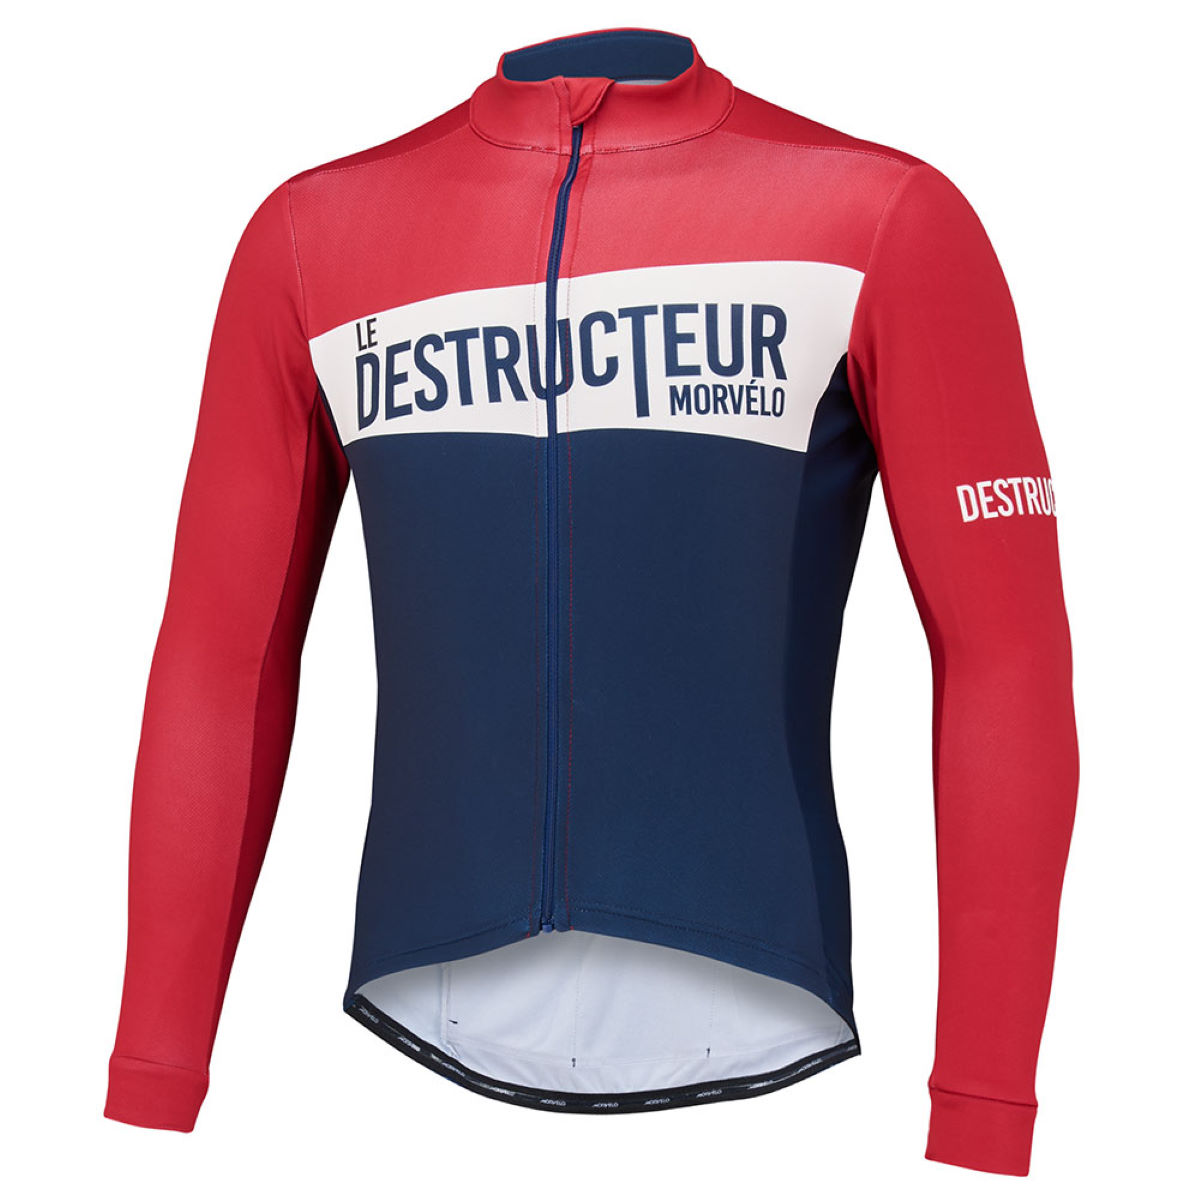 Maillot Morvelo Destructeur Thermoactive (manches longues) - XS